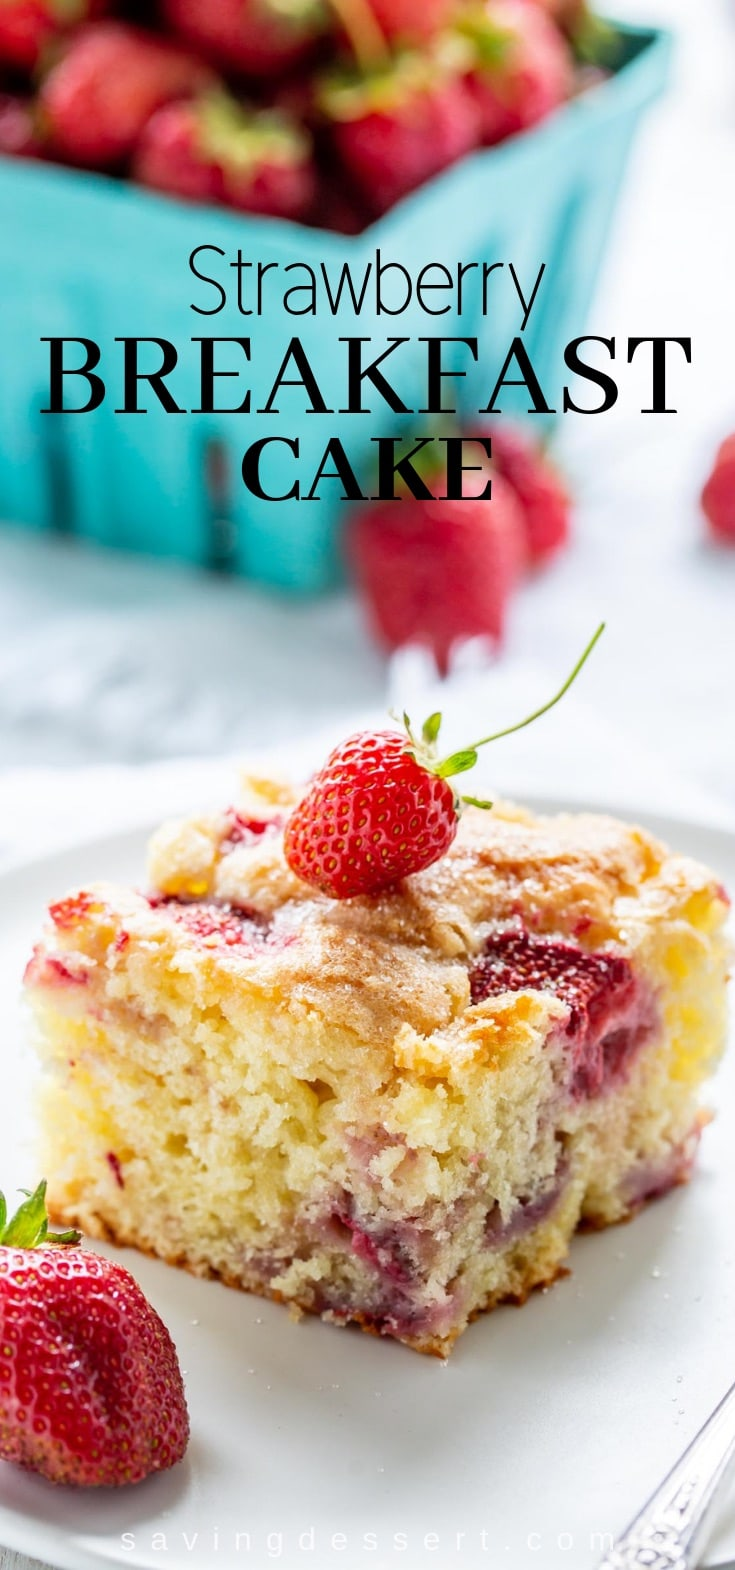 Strawberry Breakfast Cake made with fresh juicy strawberries tucked into a moist sour cream batter. Not overly sweet, this cake is terrific served for breakfast, brunch or as a light dessert. #breakfastcake #strawberrycake #strawberrybreakfastcake #breakfast #brunch #easycake #lightdessert #baking #coffeecake